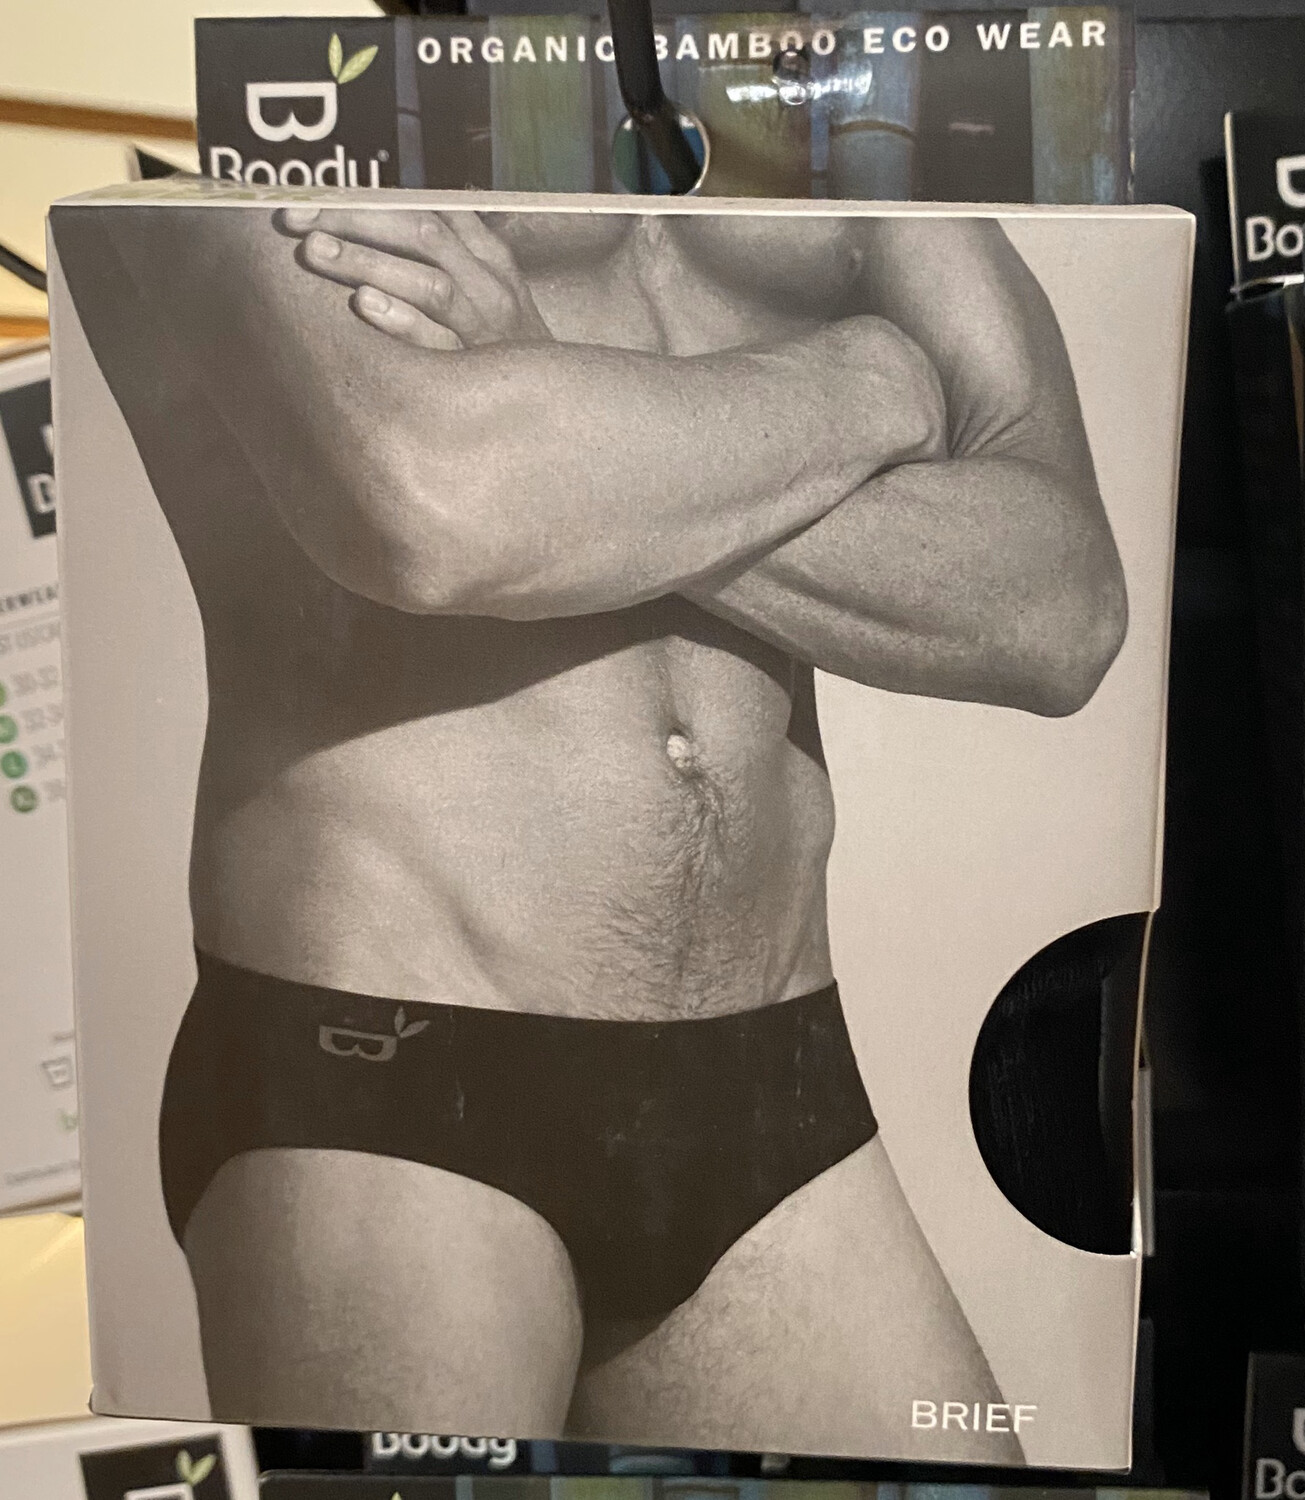 Men's Bamboo Black Classic Brief Booty Wear Tap For Size